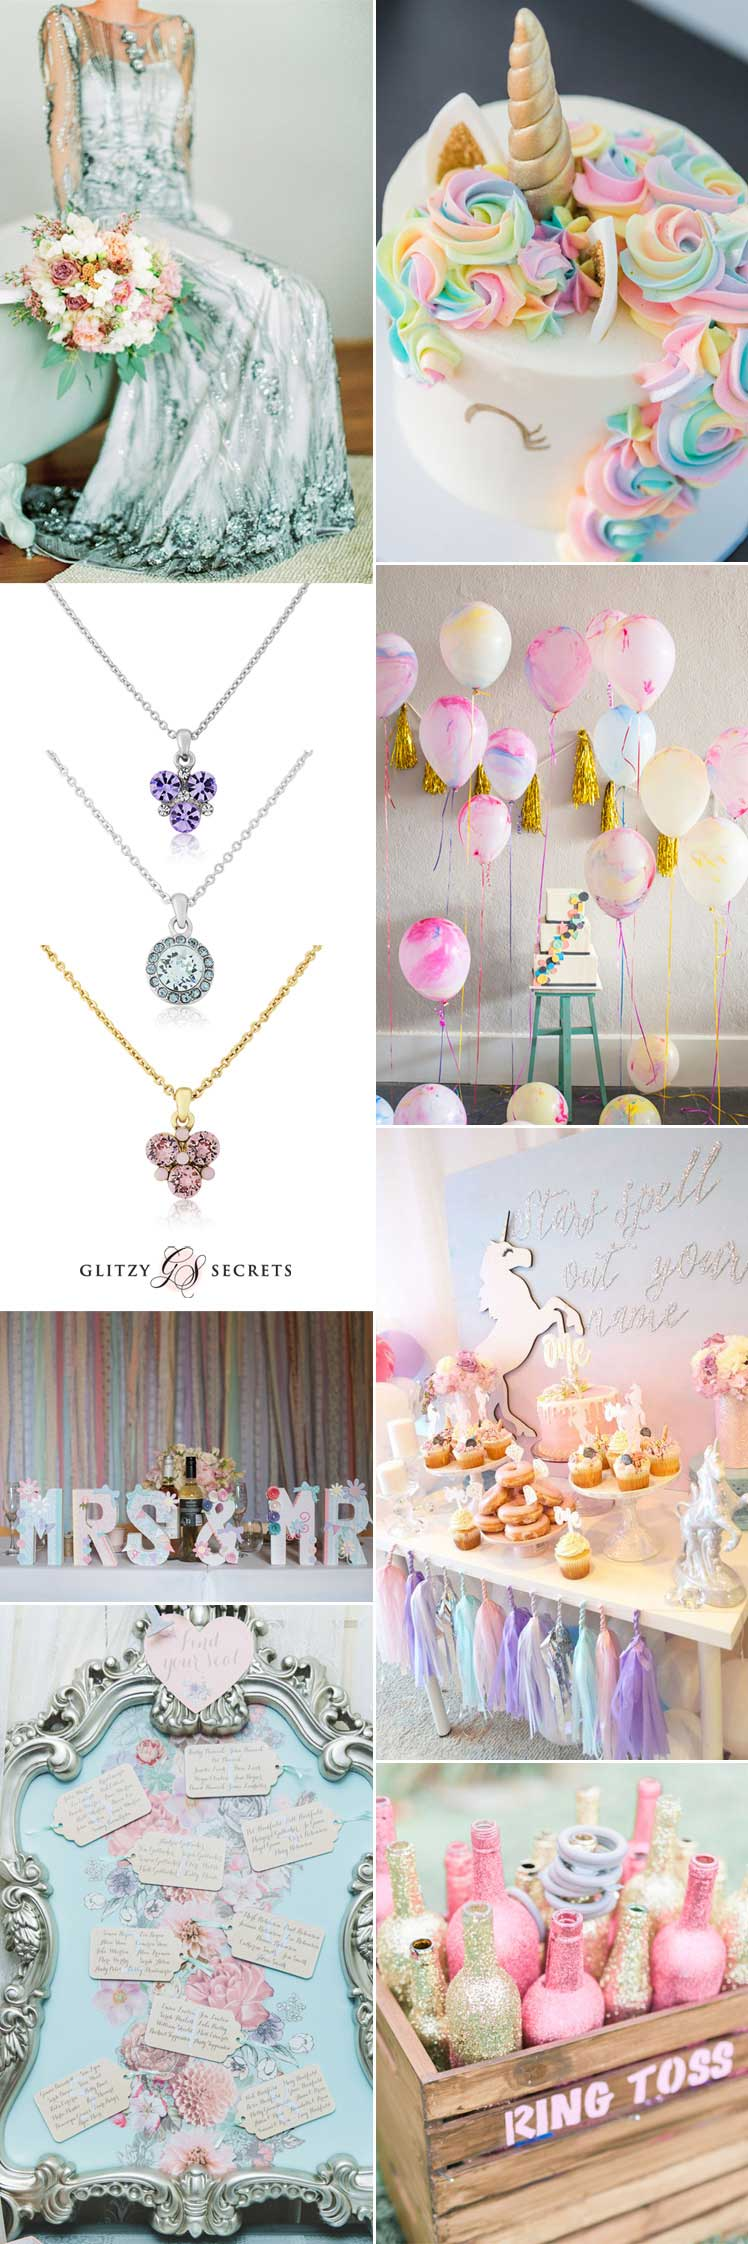 magical unicorn wedding ideas